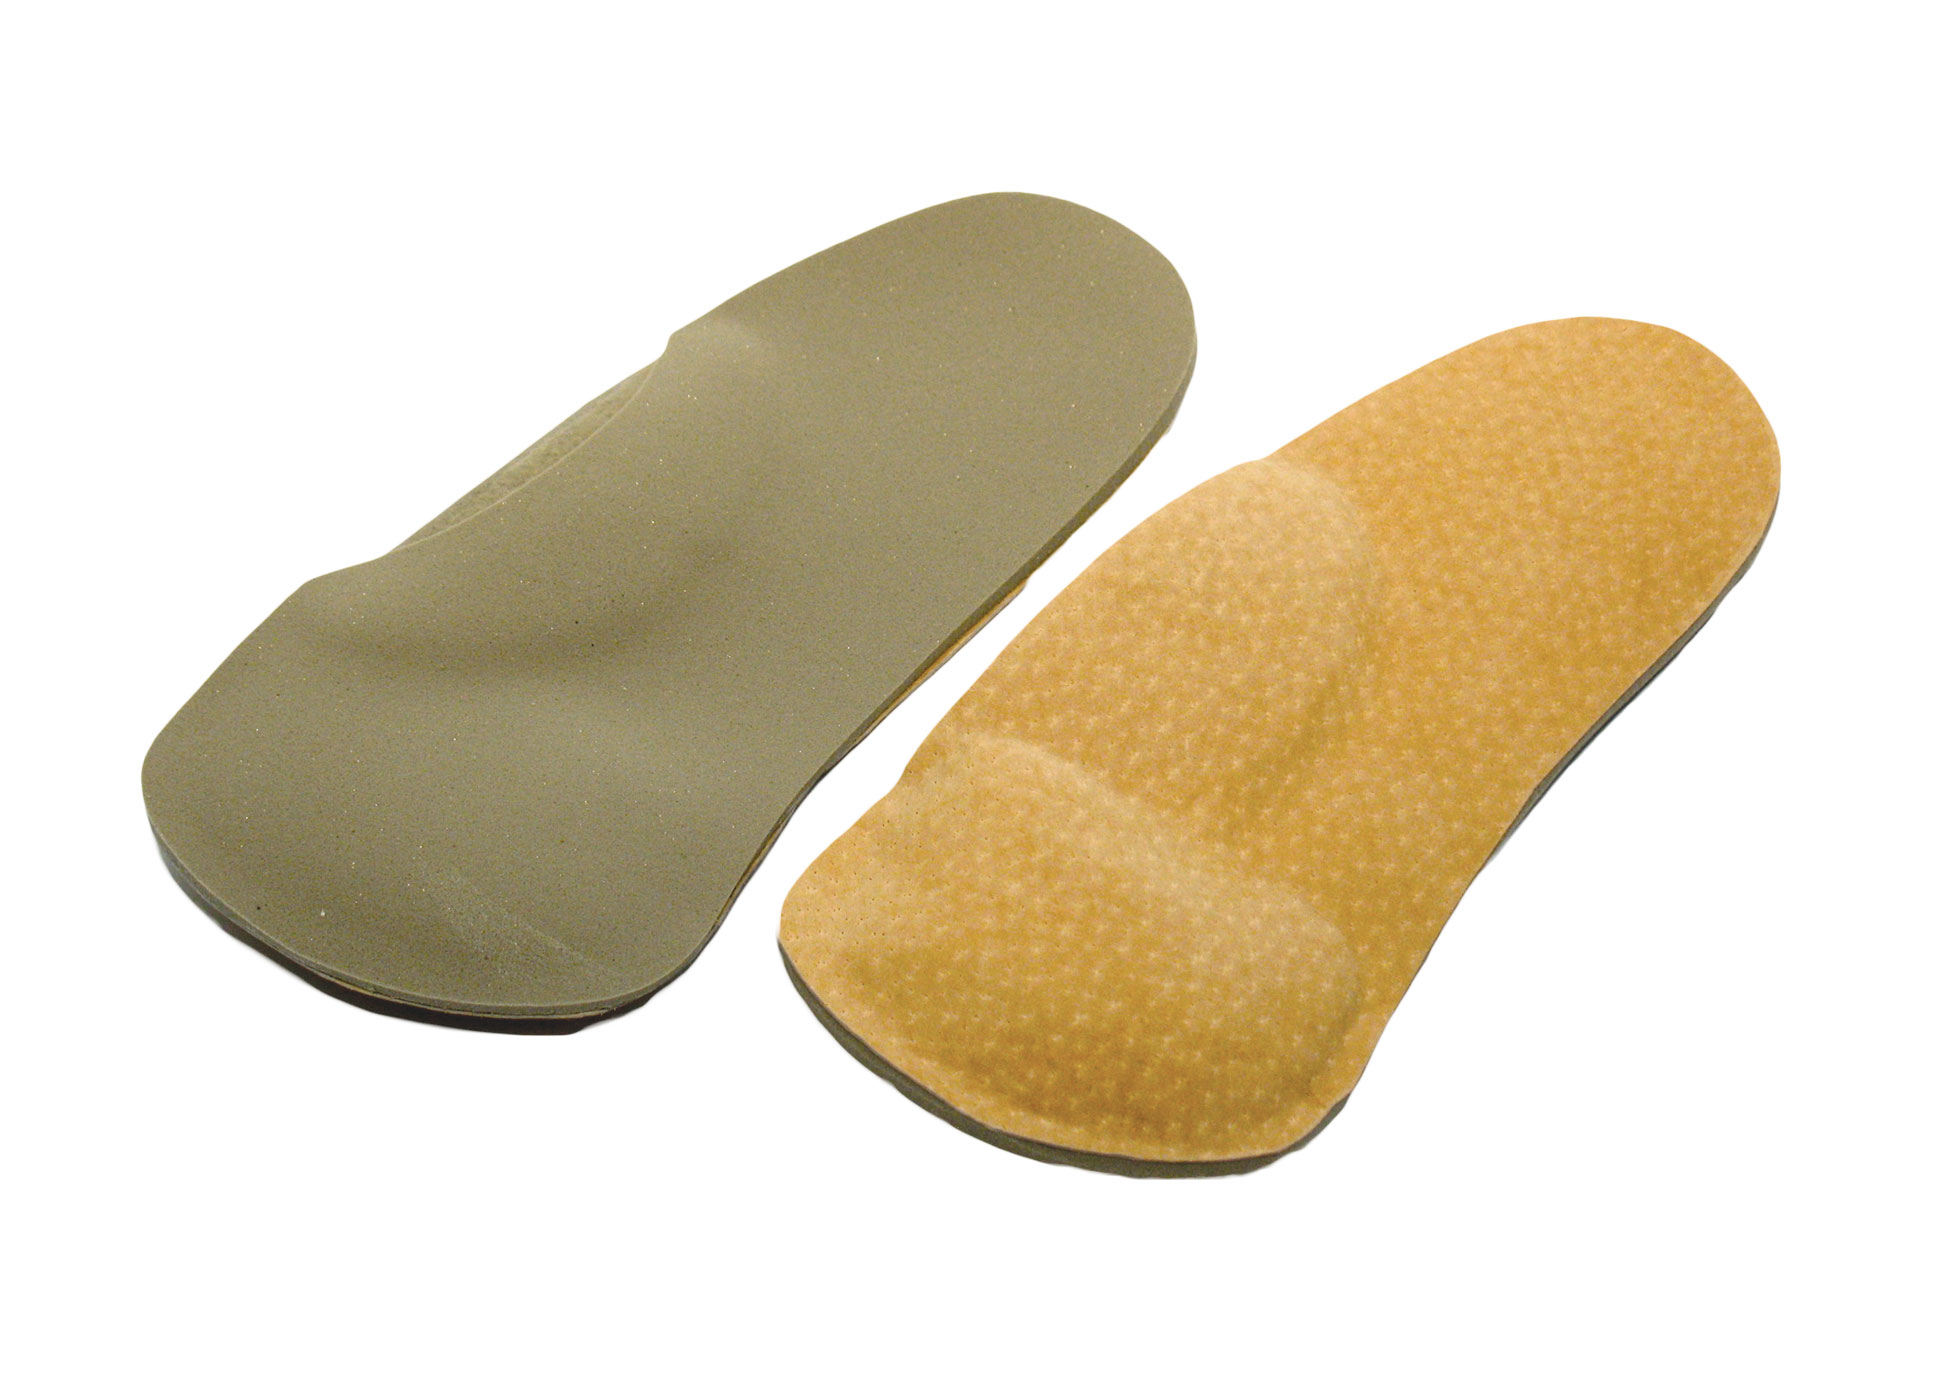 Haplabase Orthotic - Foot Supports - Model 405 - Per Pair - Met and Valgus Pads - Mens 9 - 11